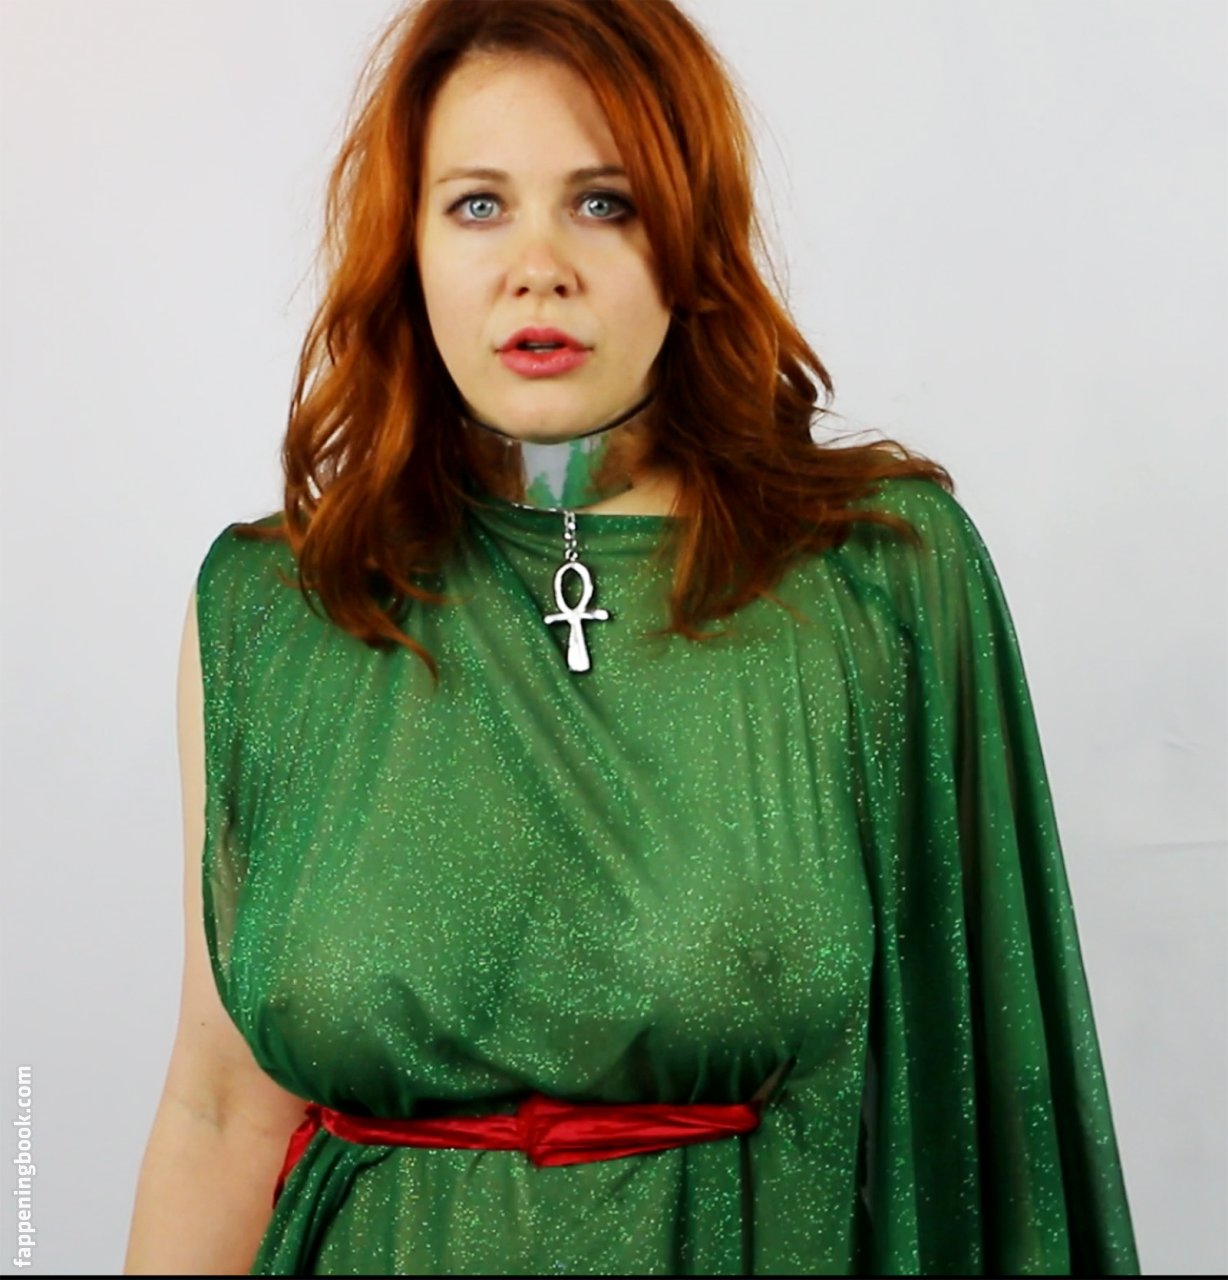 Maitland Ward Nude, Sexy, The Fappening, Uncensored